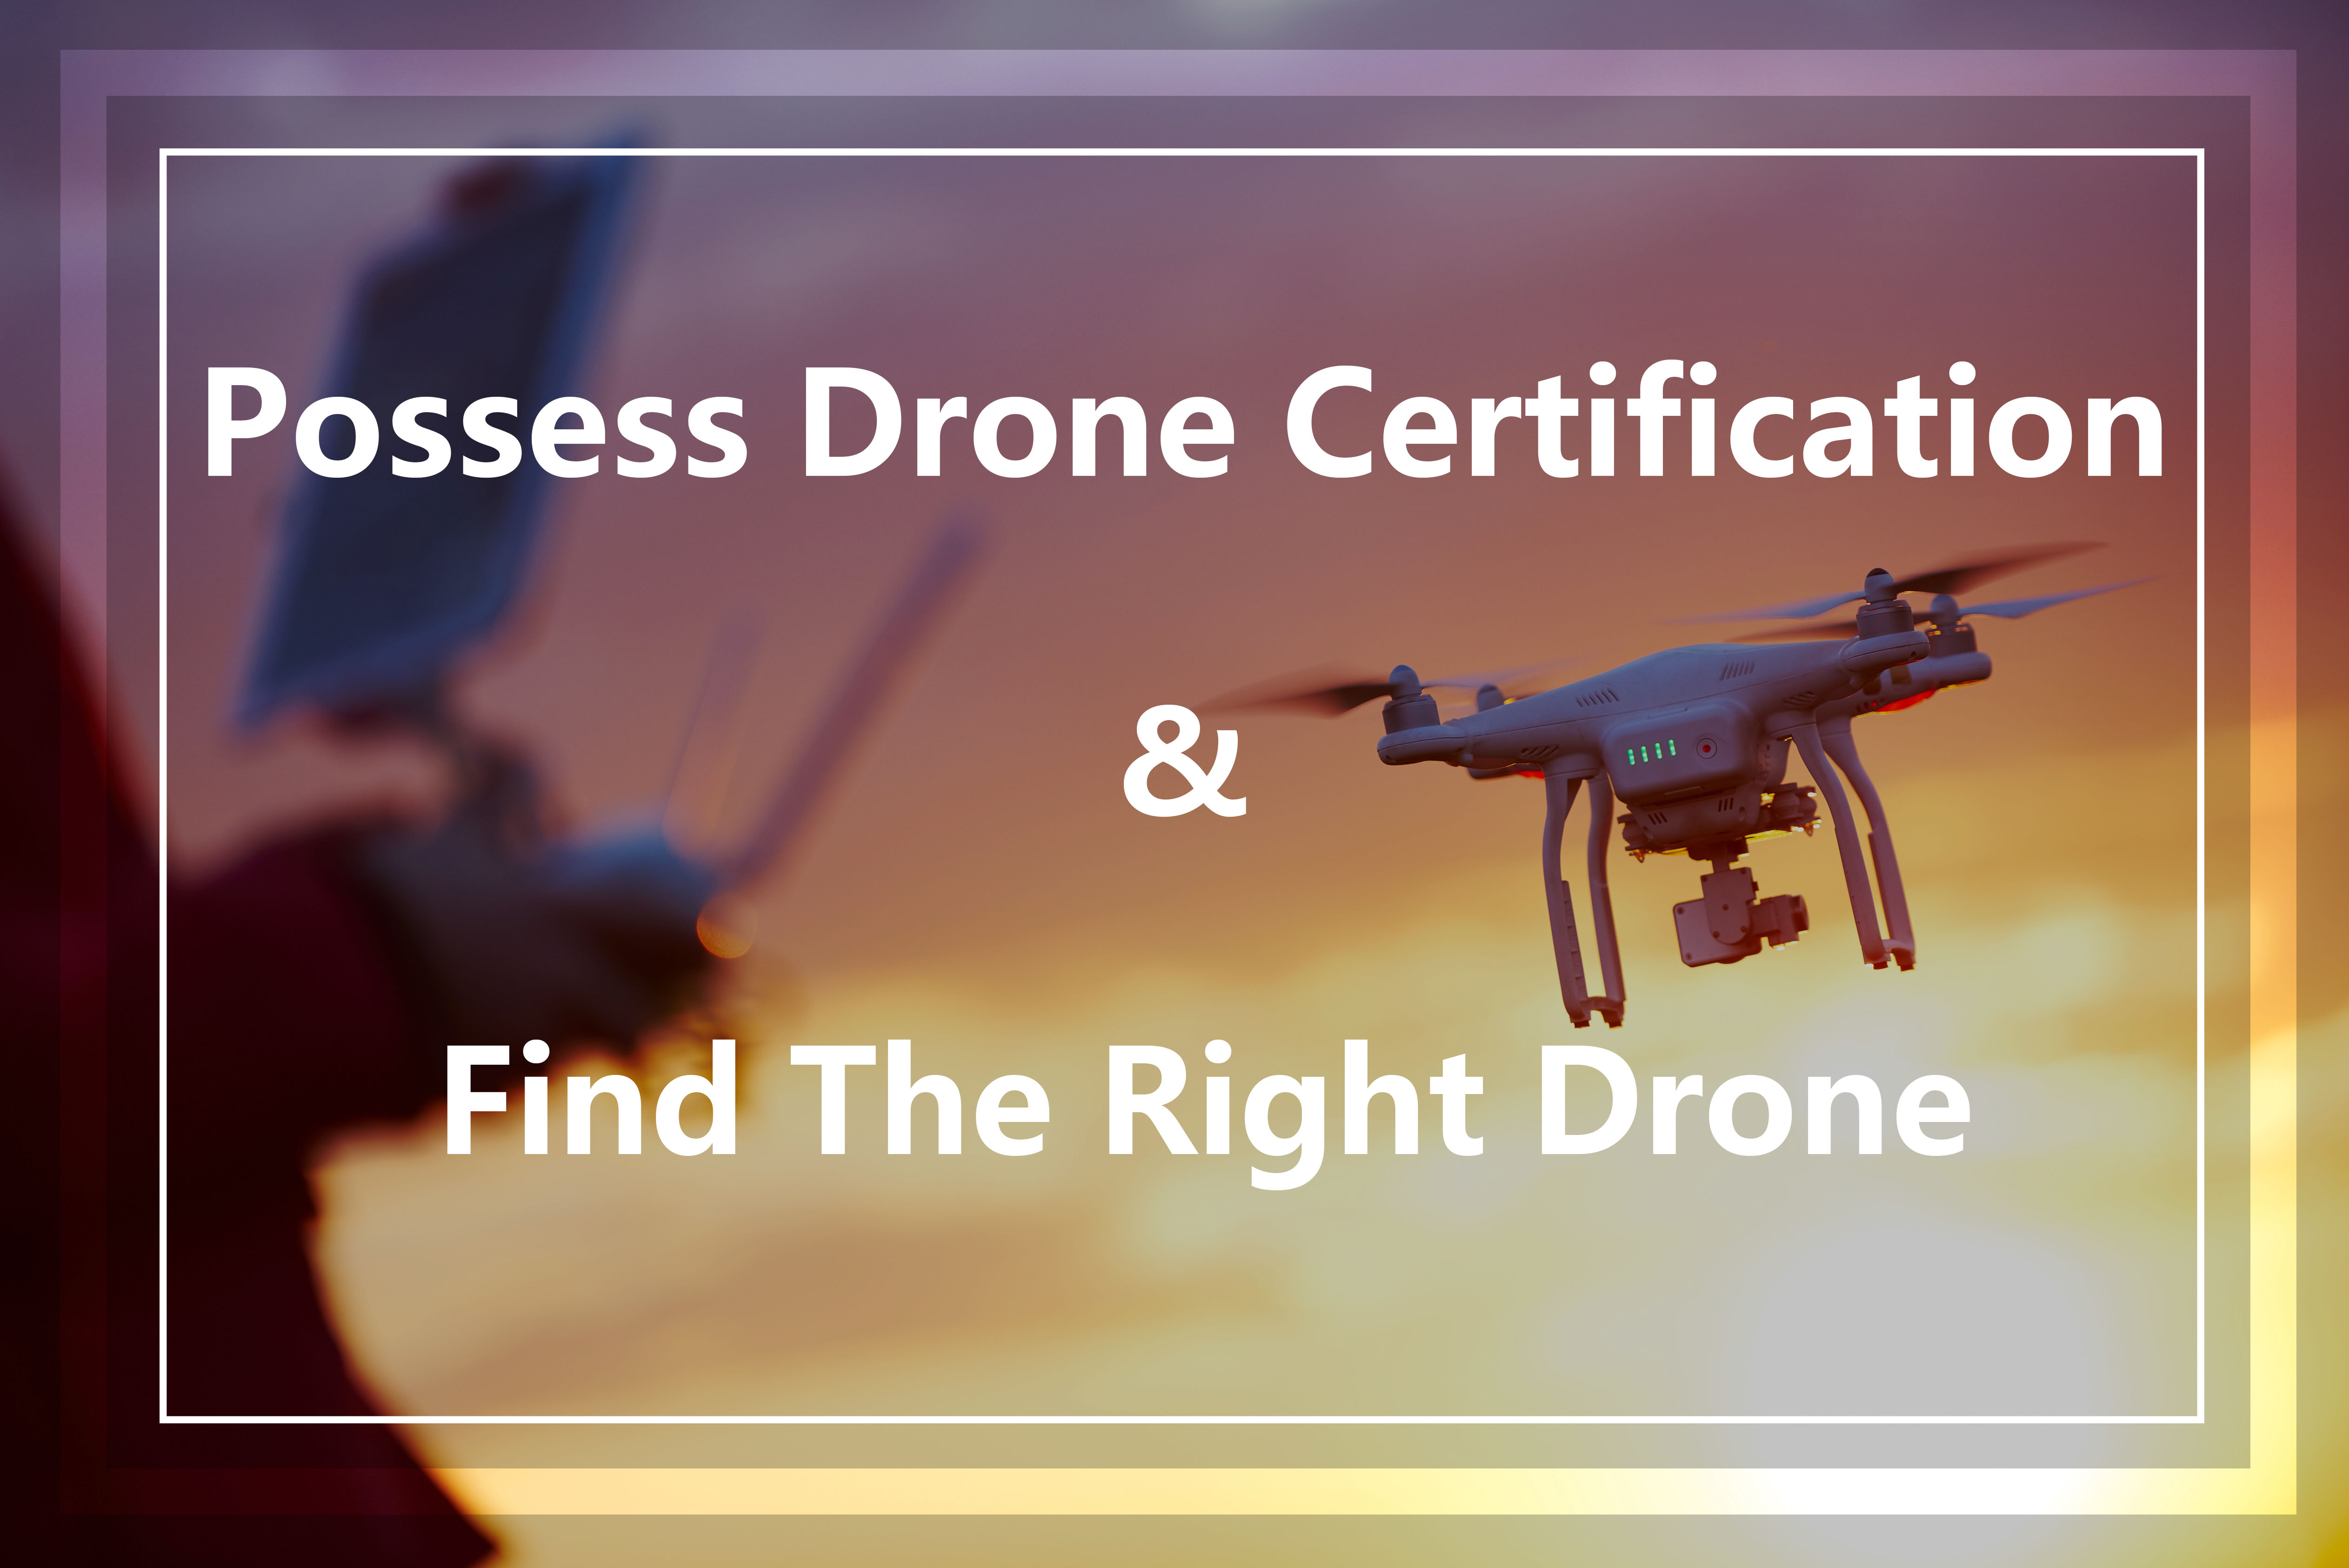 How To Possess A Drone Certification And Find The Right Drone